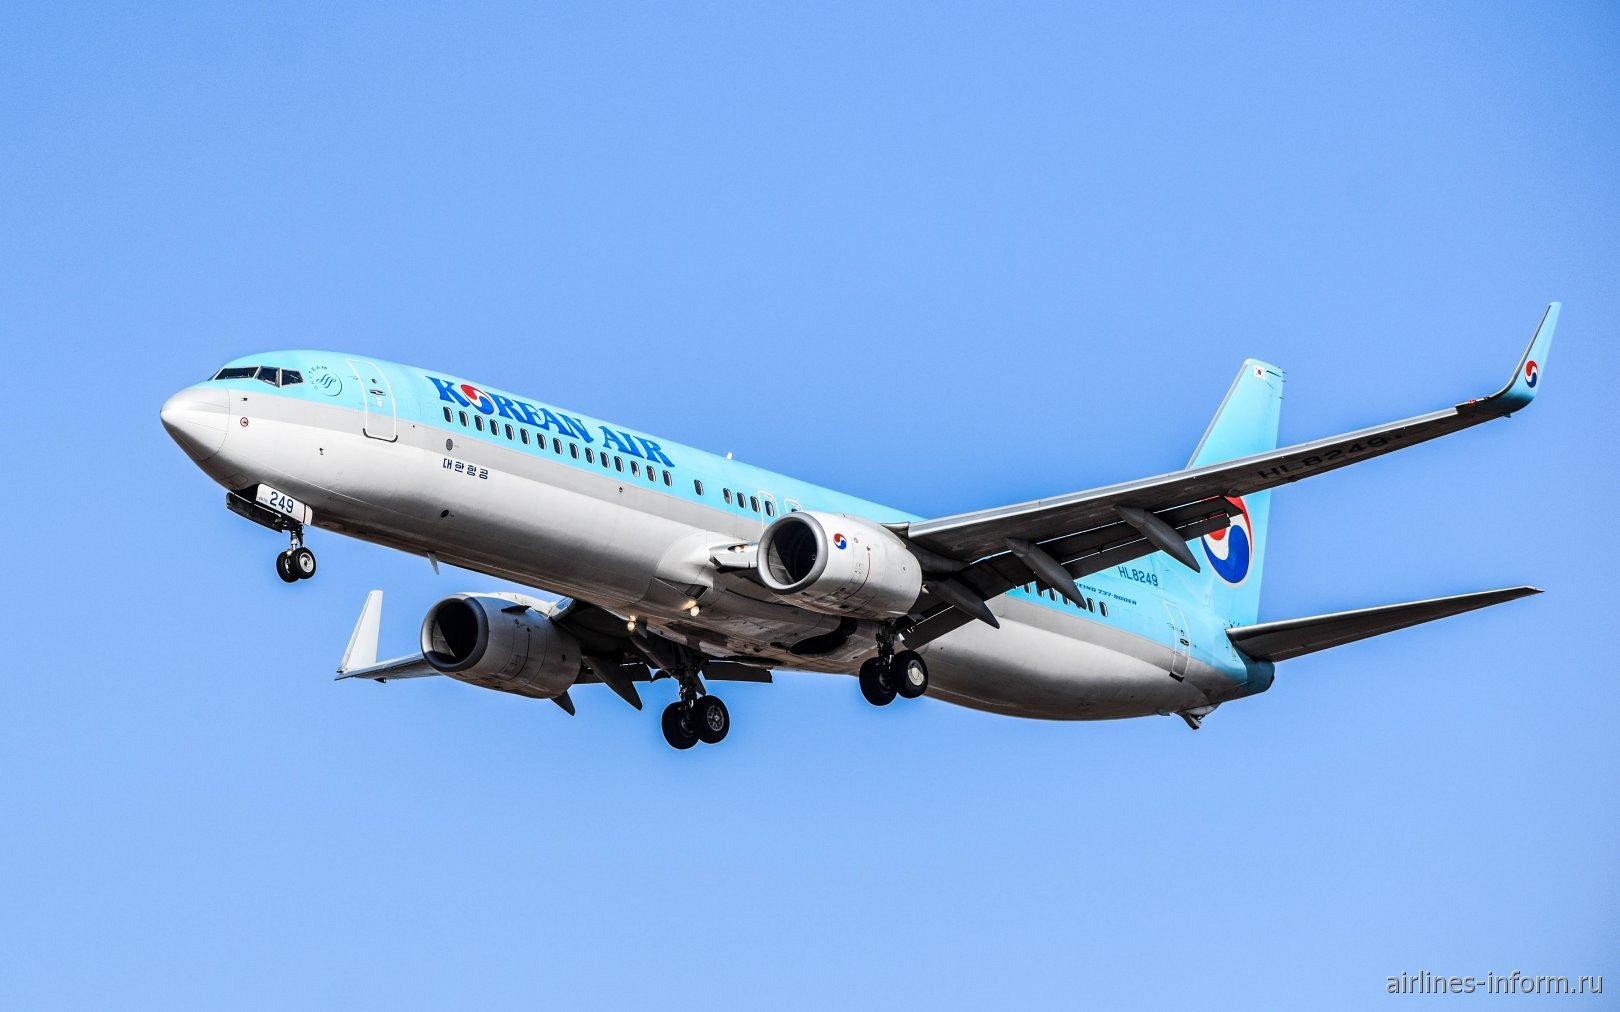 Самолет Boeing 737-900 HL8249 авиакомпании Korean Air